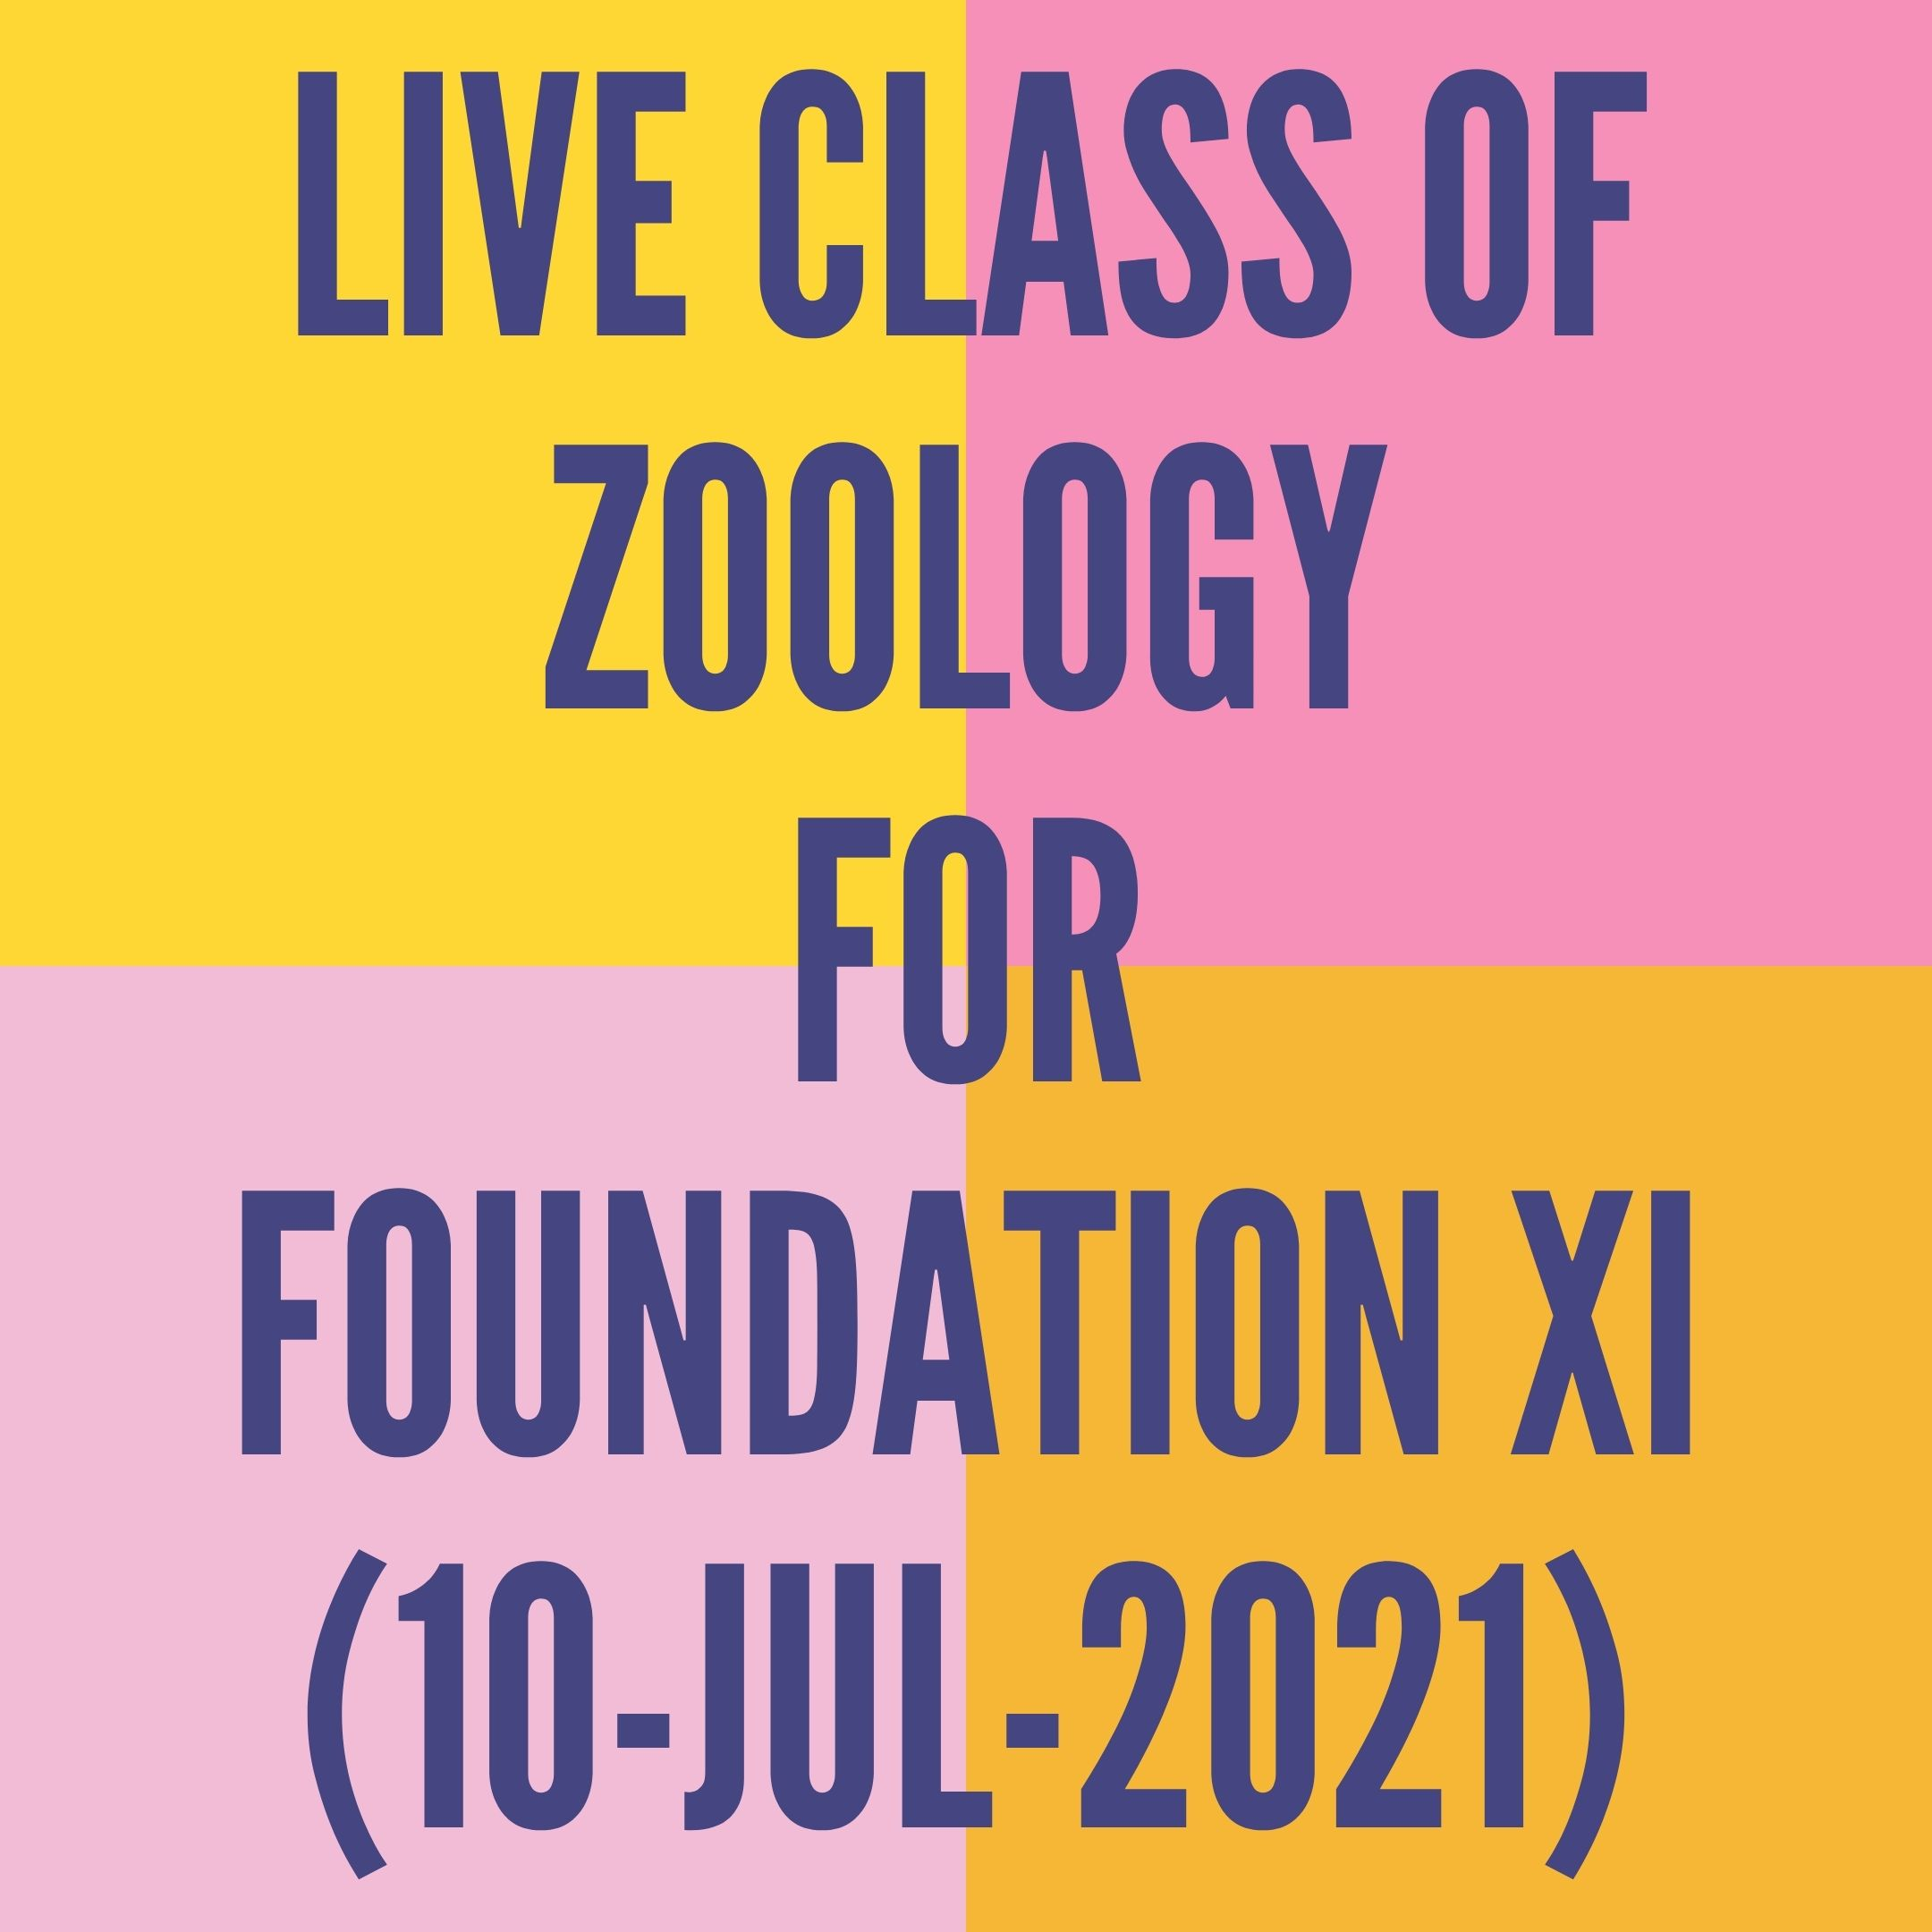 LIVE CLASS OF ZOOLOGY FOR FOUNDATION XI (10-JUL-2021) DIGESTIVE SYSTEM